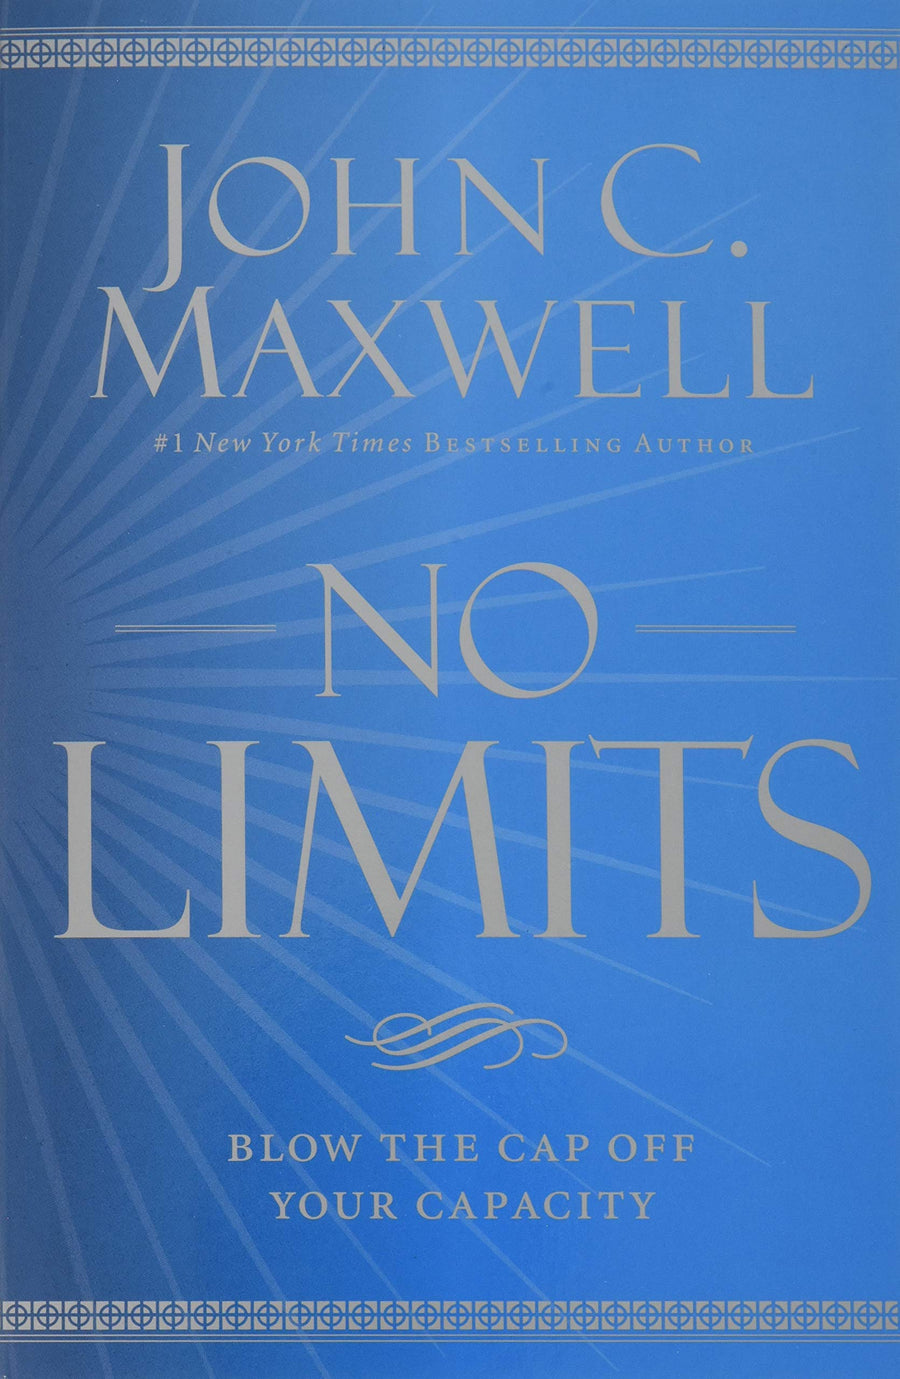 No Limits: Blow the CAP Off Your Capacity by John C. Maxwell